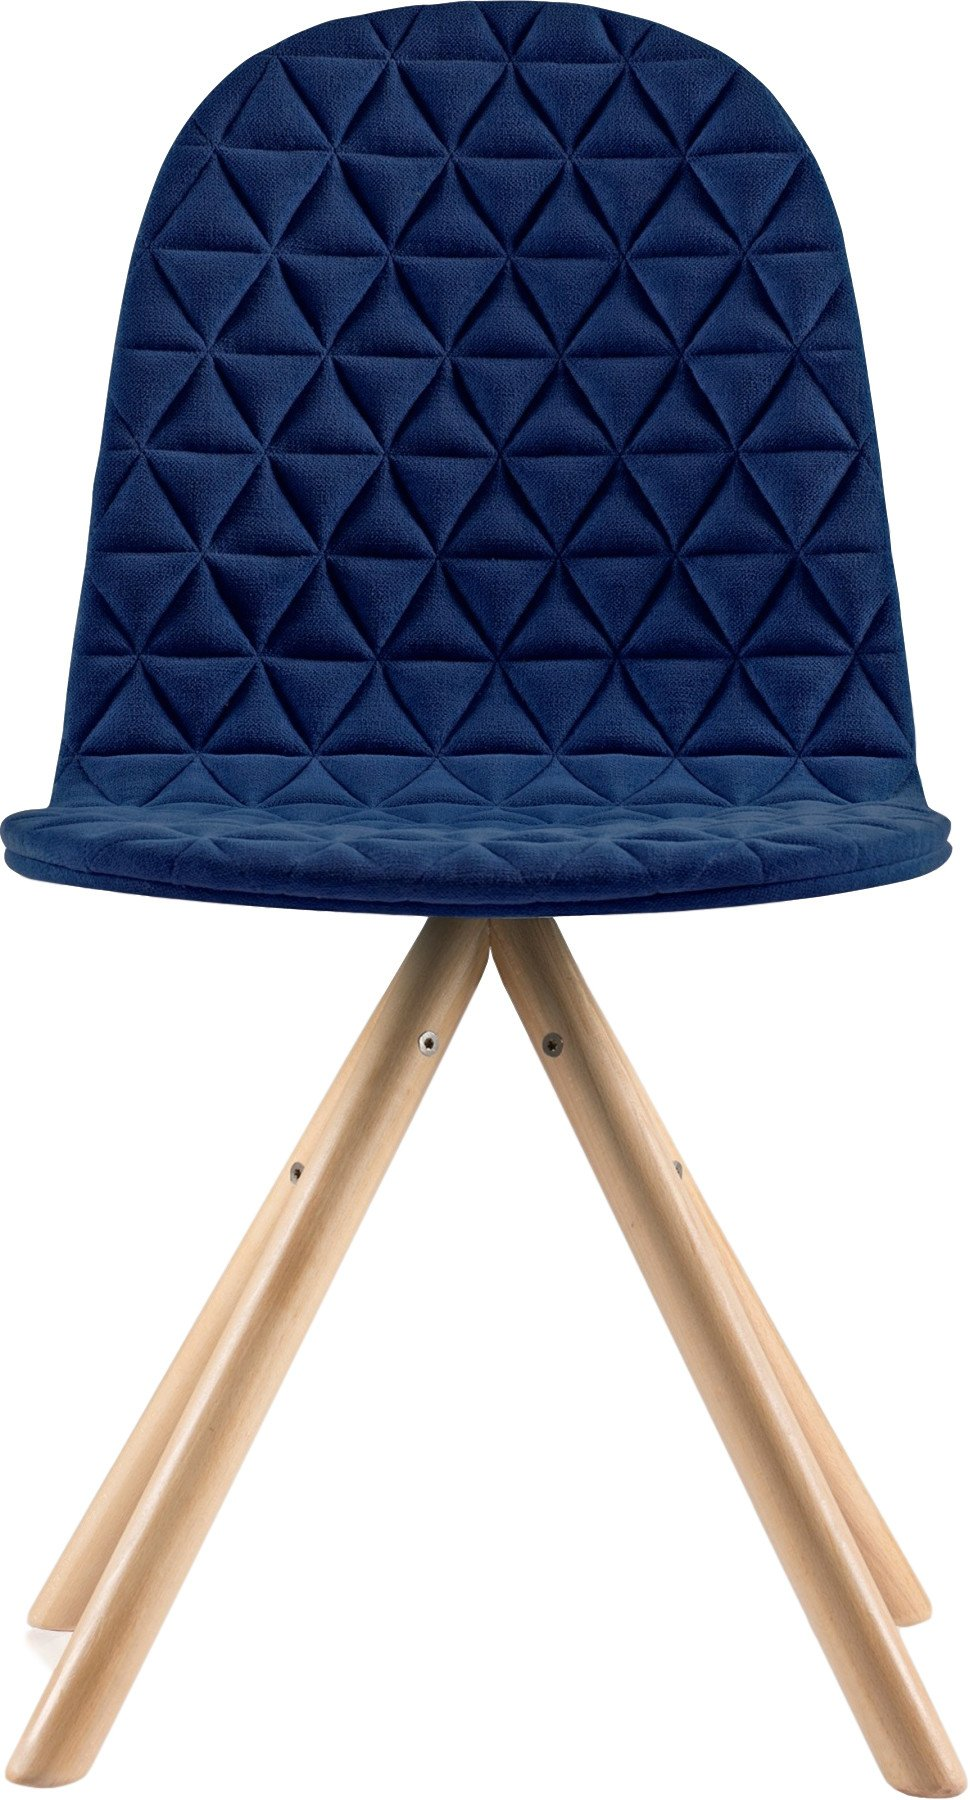 Mannequin 01 Chair Natural / Navy Blue, Iker